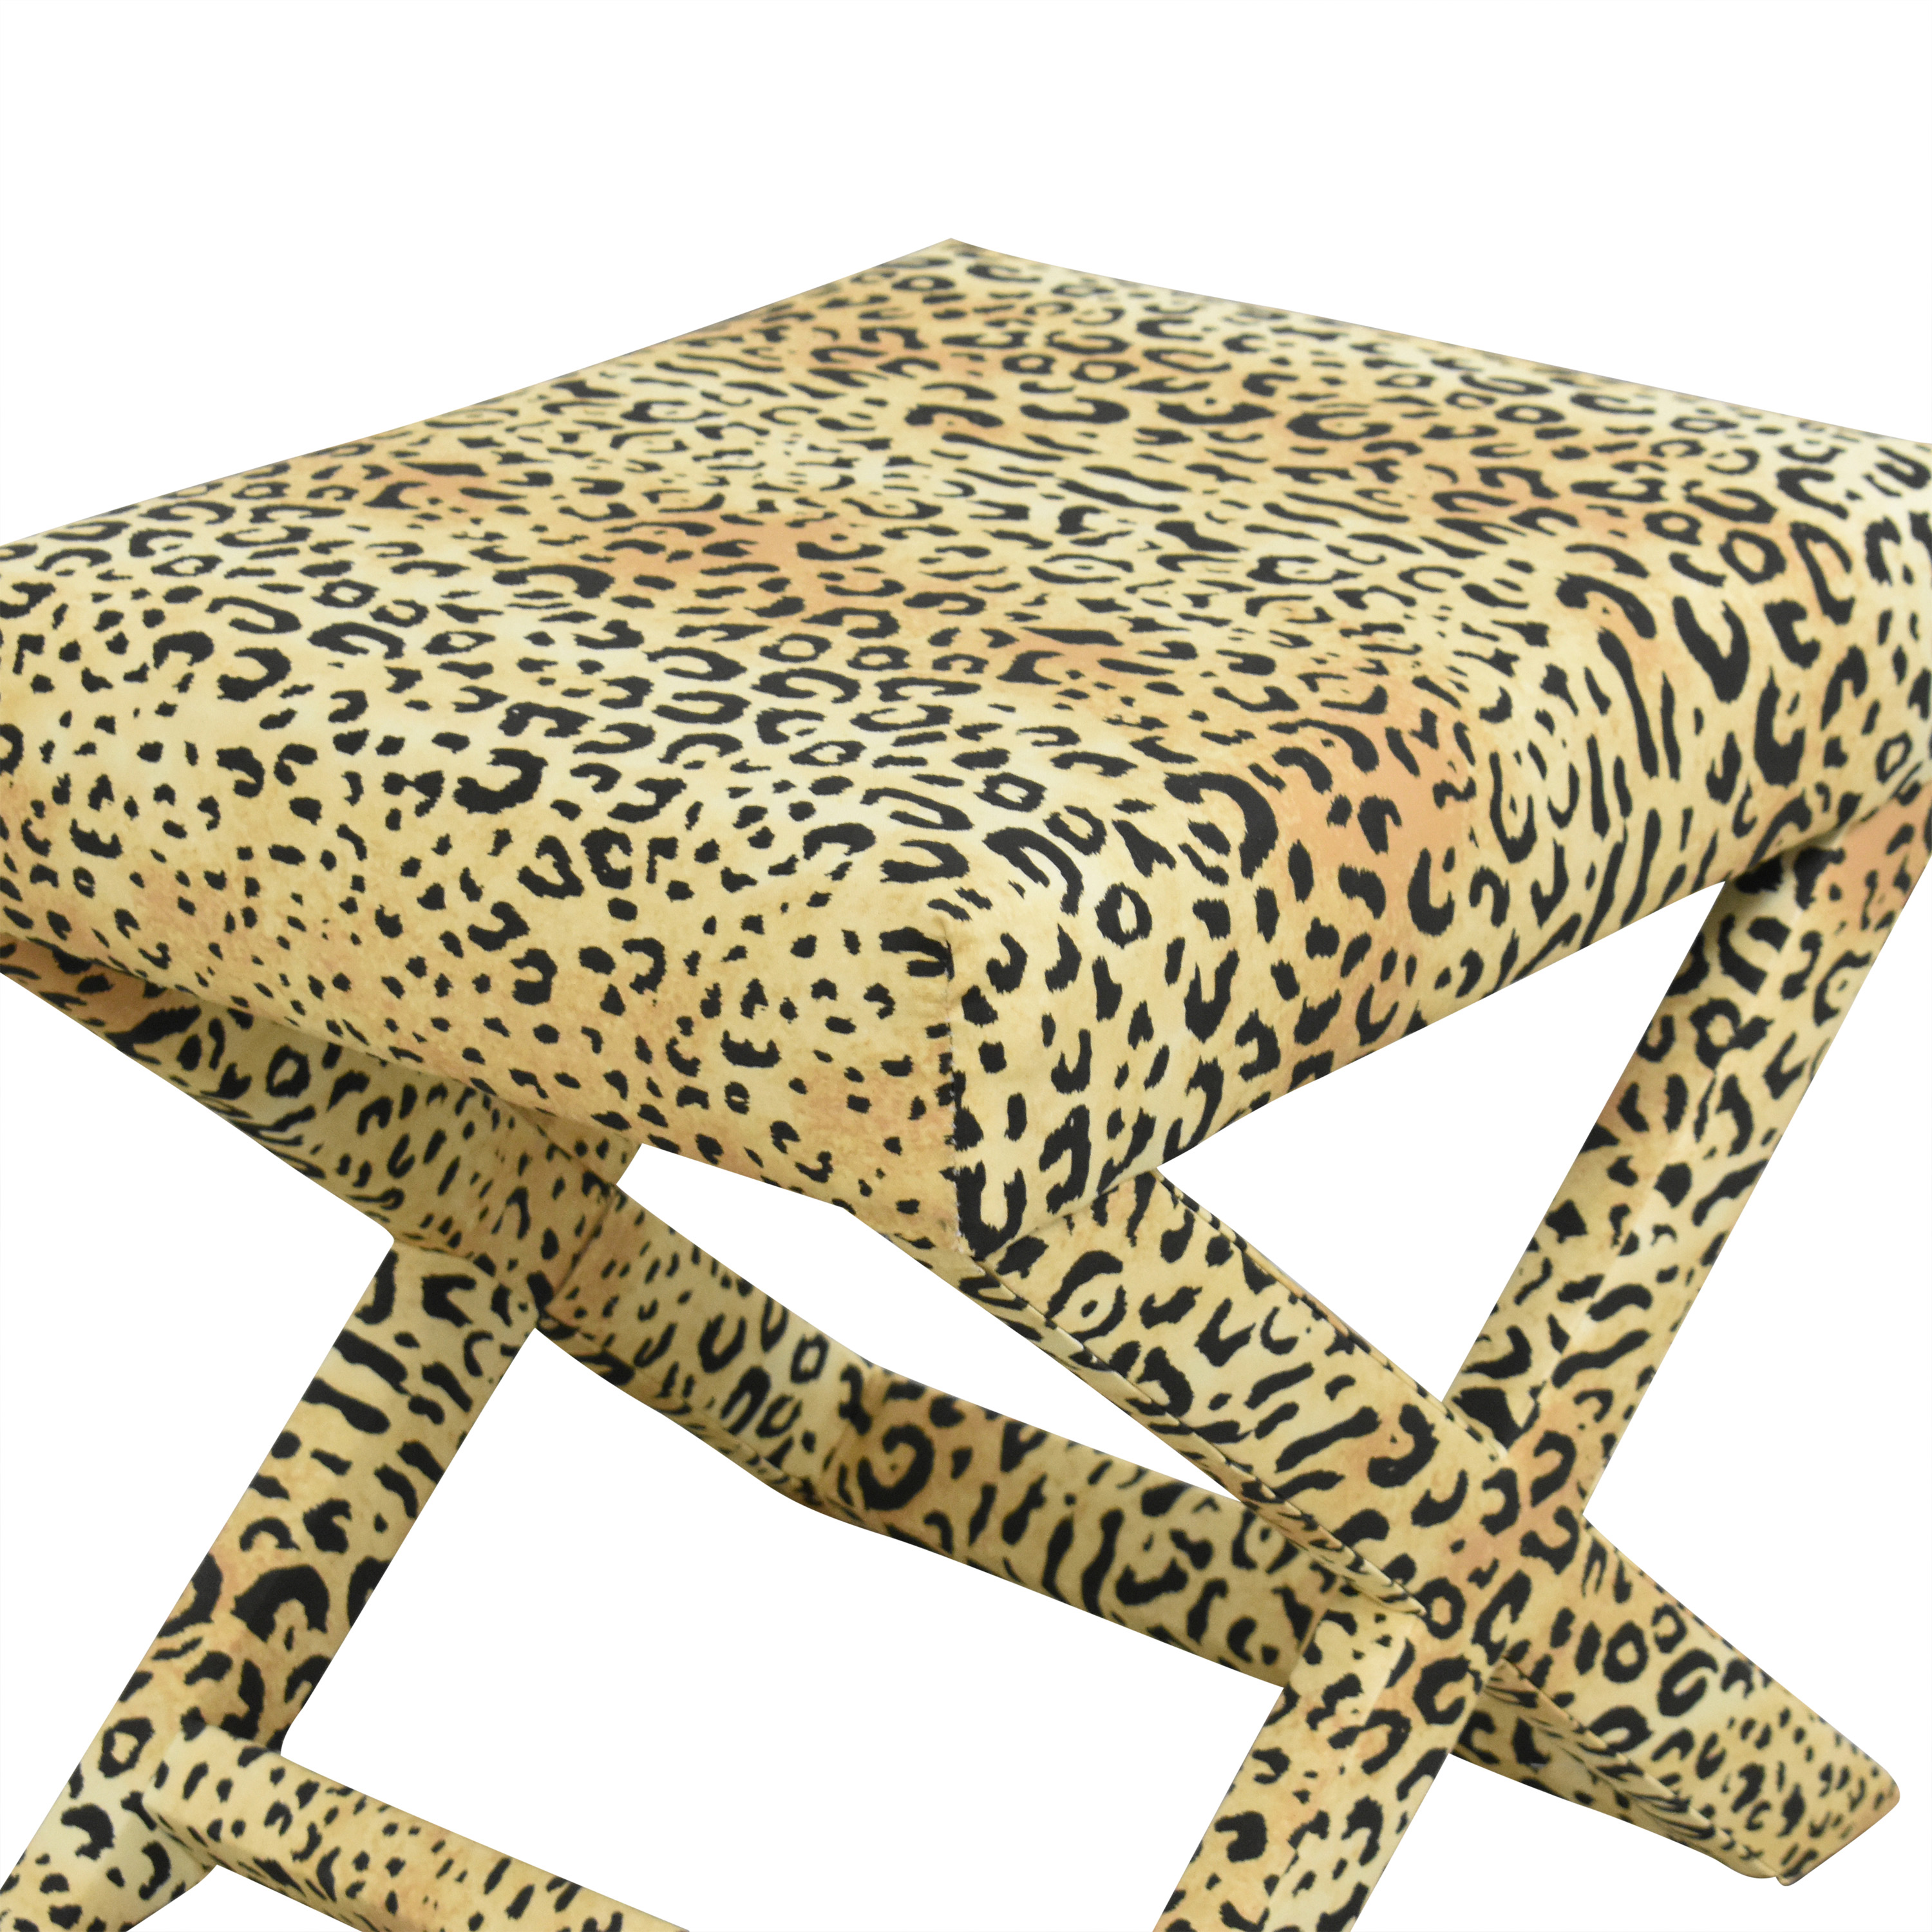 The Inside The Inside Leopard X Bench on sale